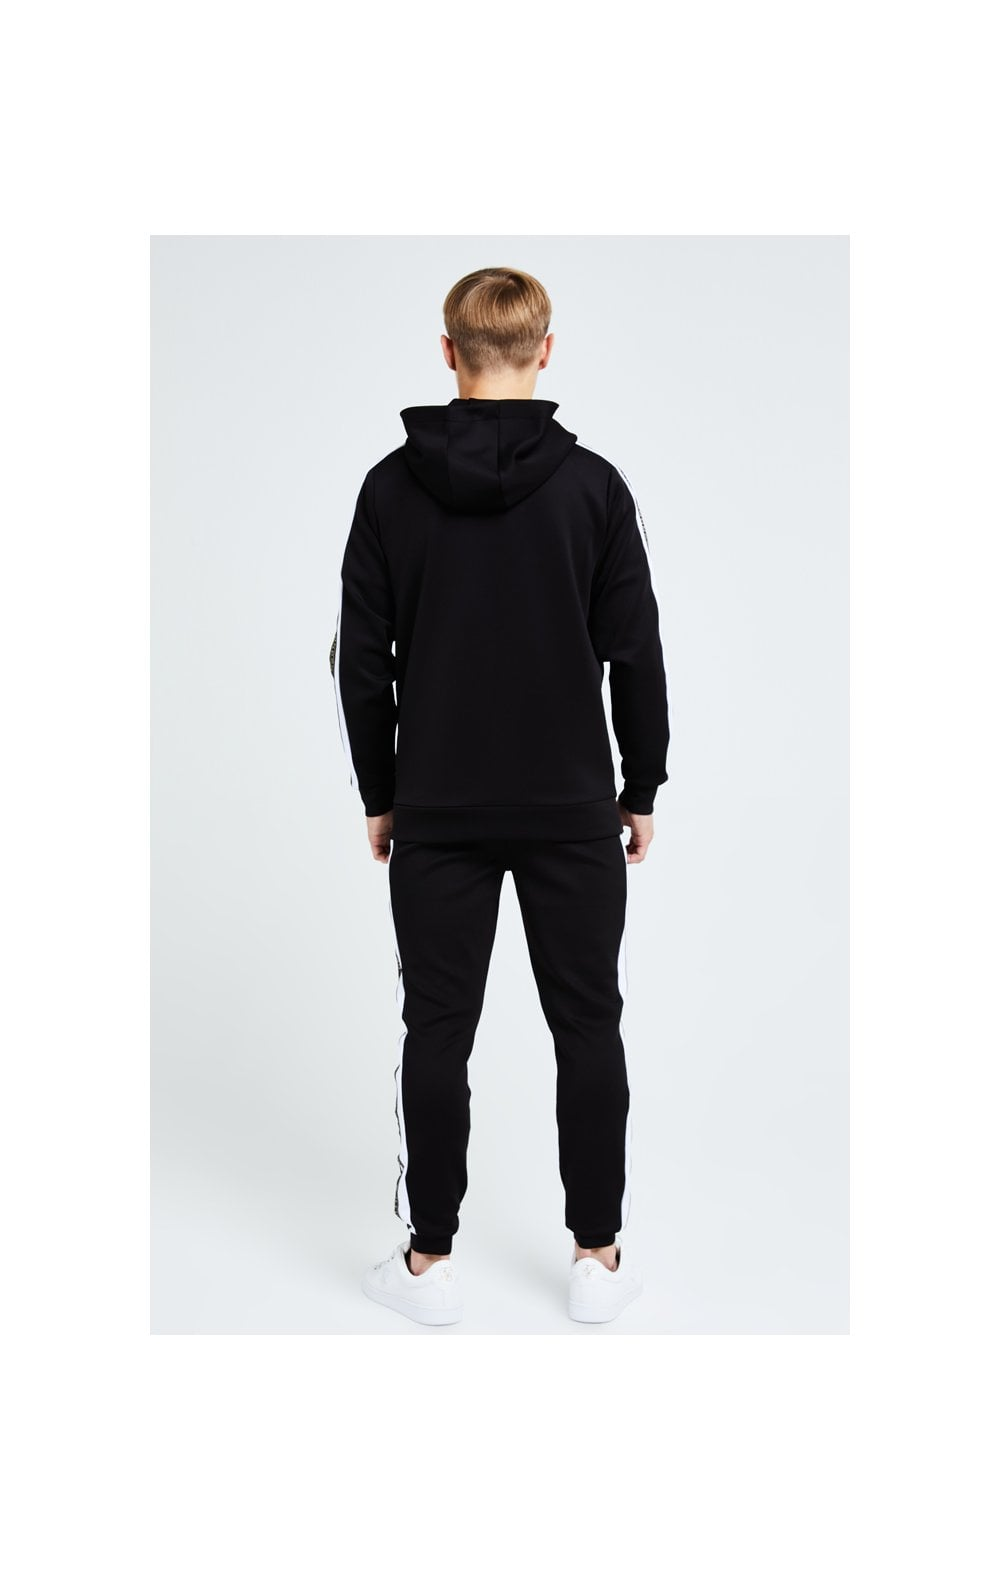 Illusive London Diverge Overhead Hoodie - Black Gold & White (5)